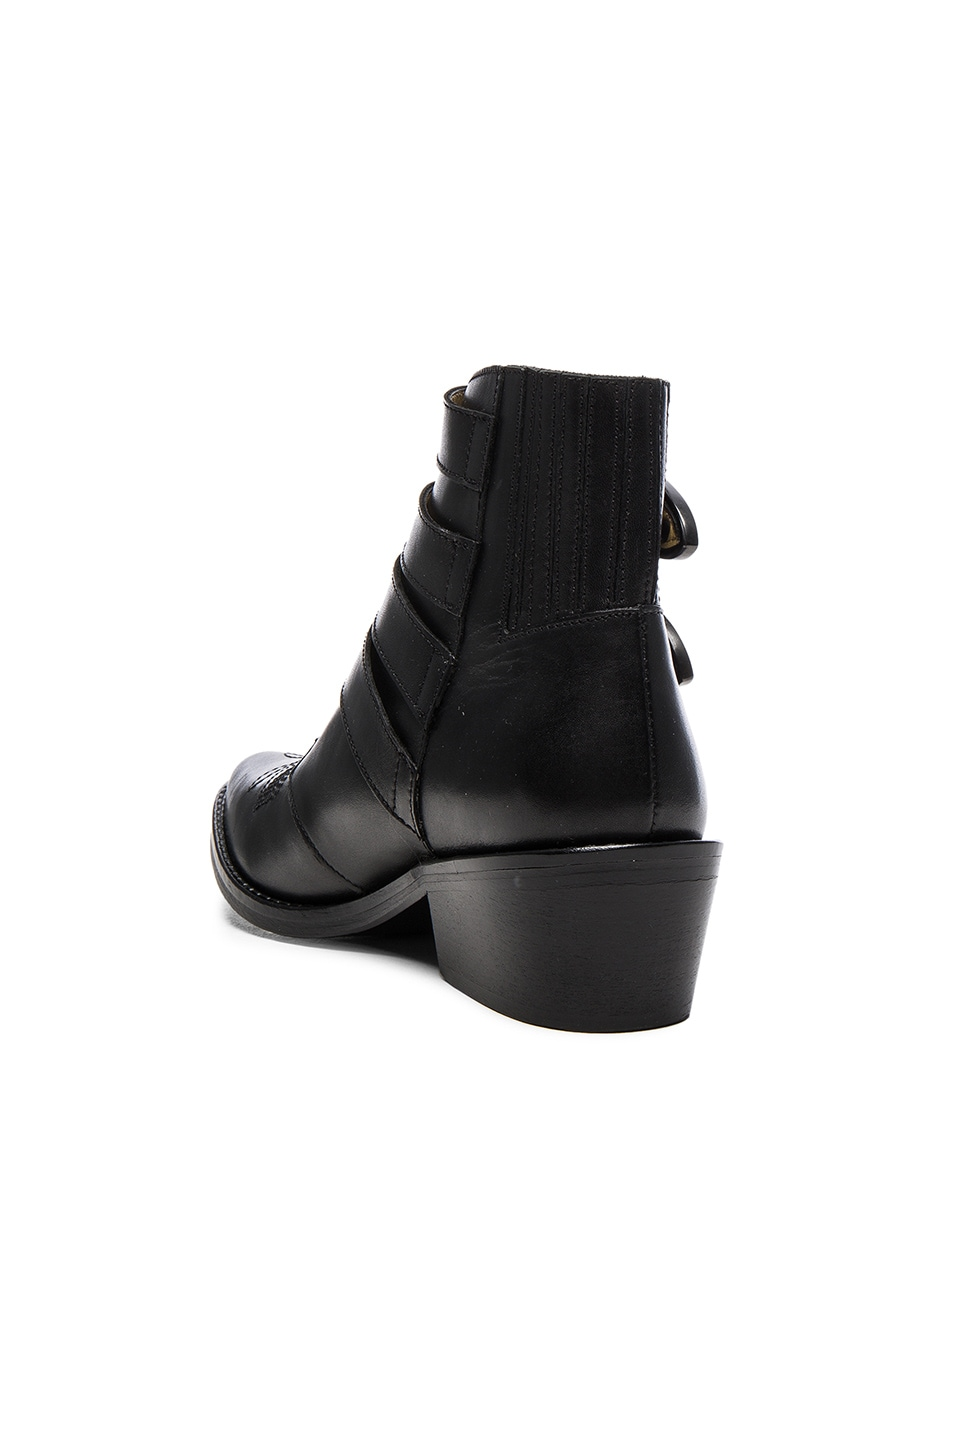 Image 3 of TOGA PULLA Buckled Leather Booties in Black Velvet